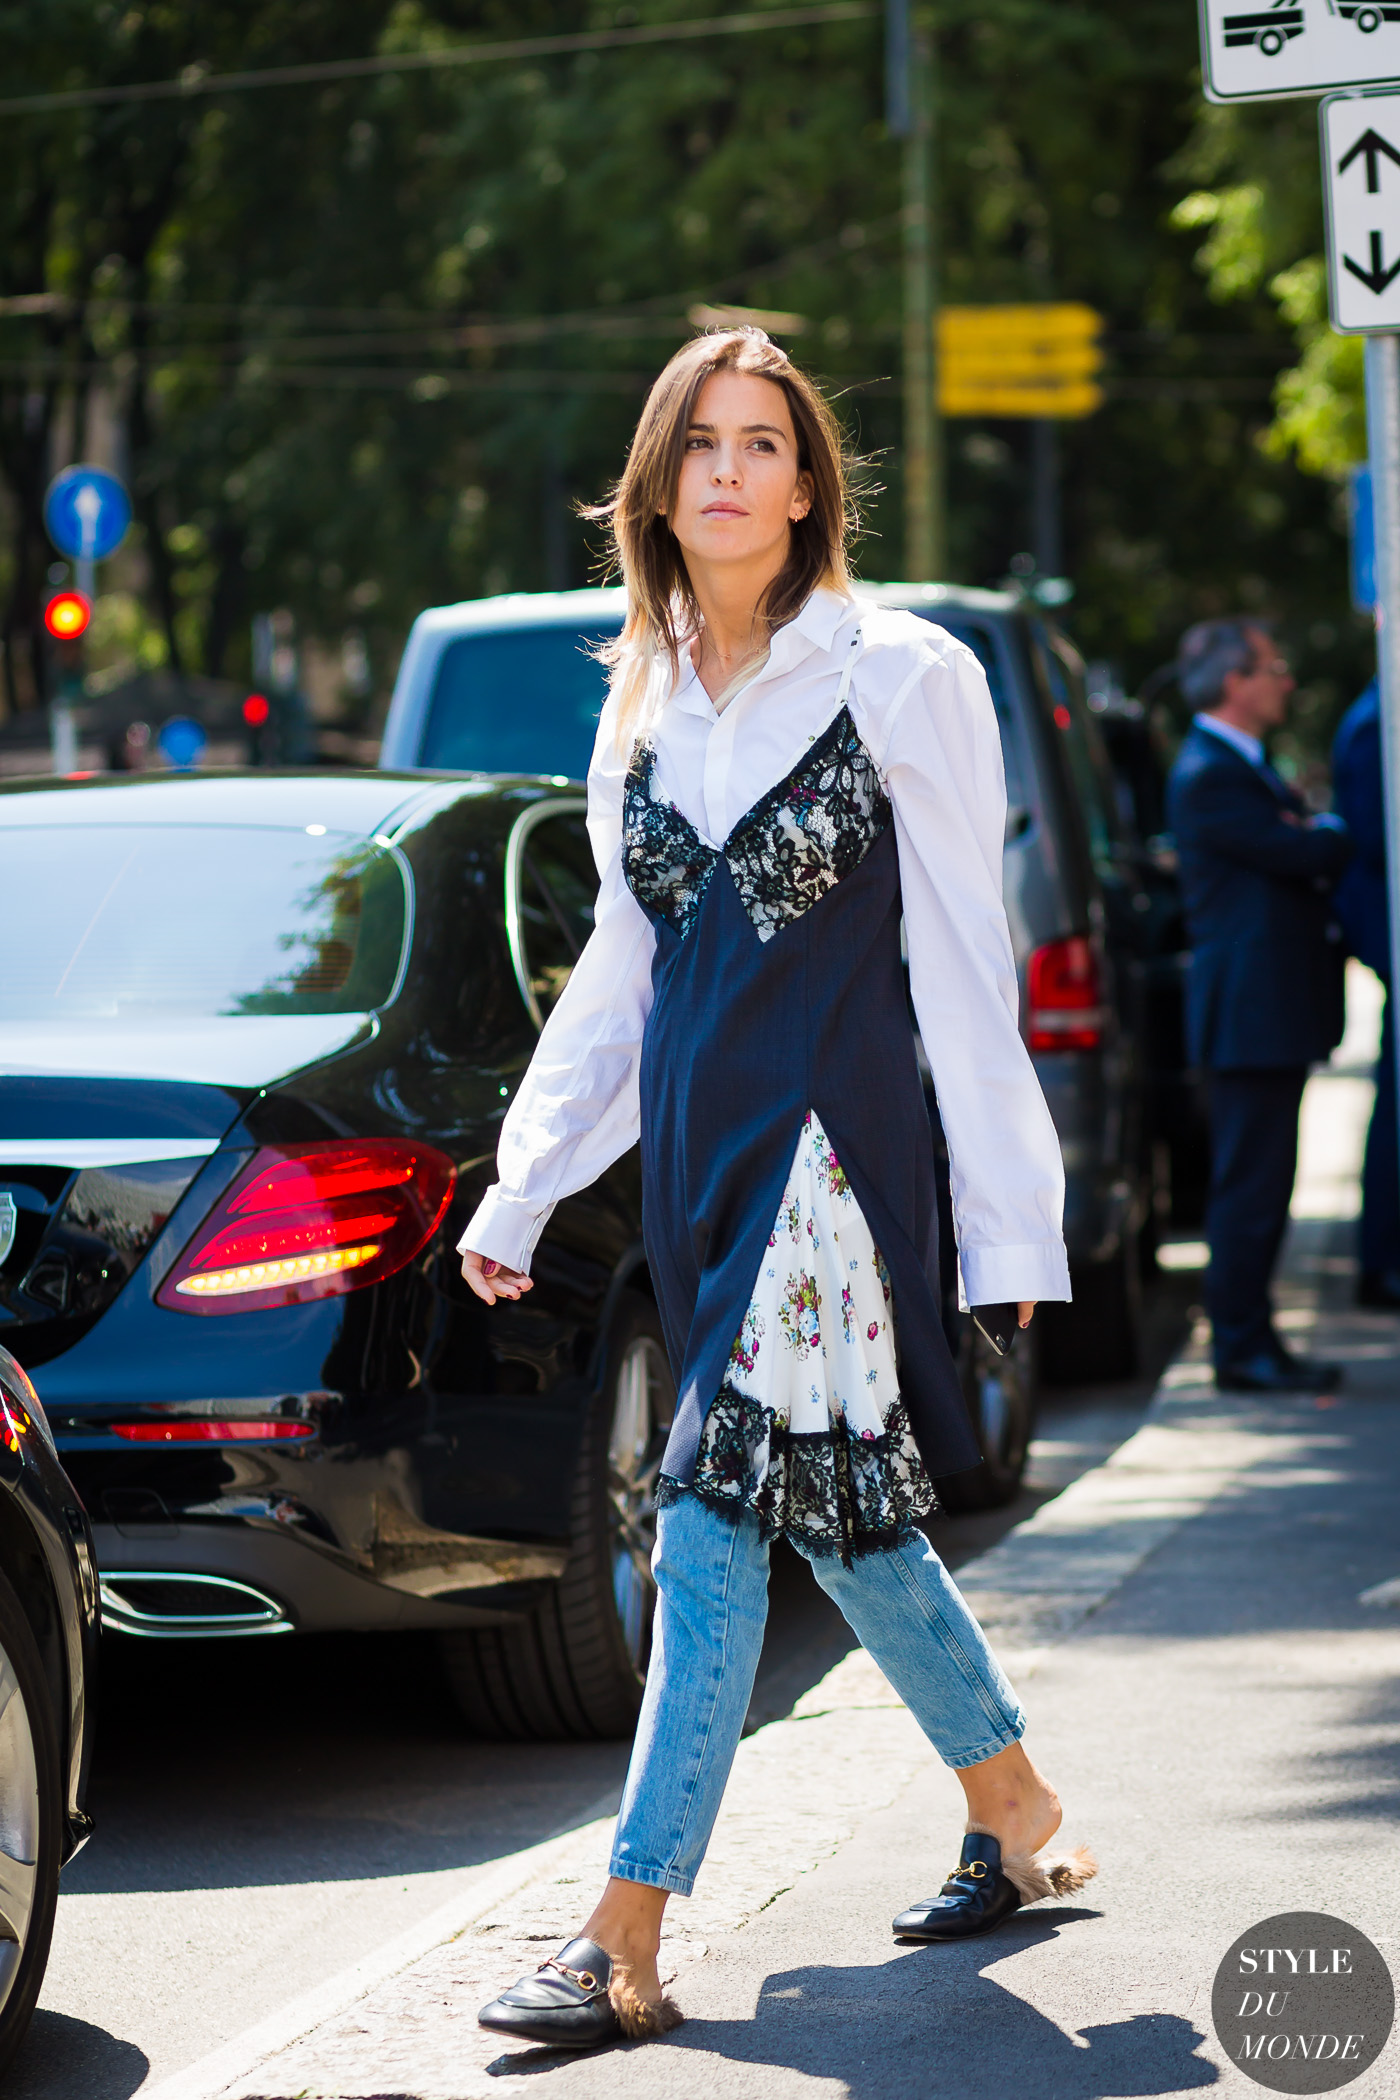 Carola Bernard Street Style Street Fashion Streetsnaps by STYLEDUMONDE Street Style Fashion Photography